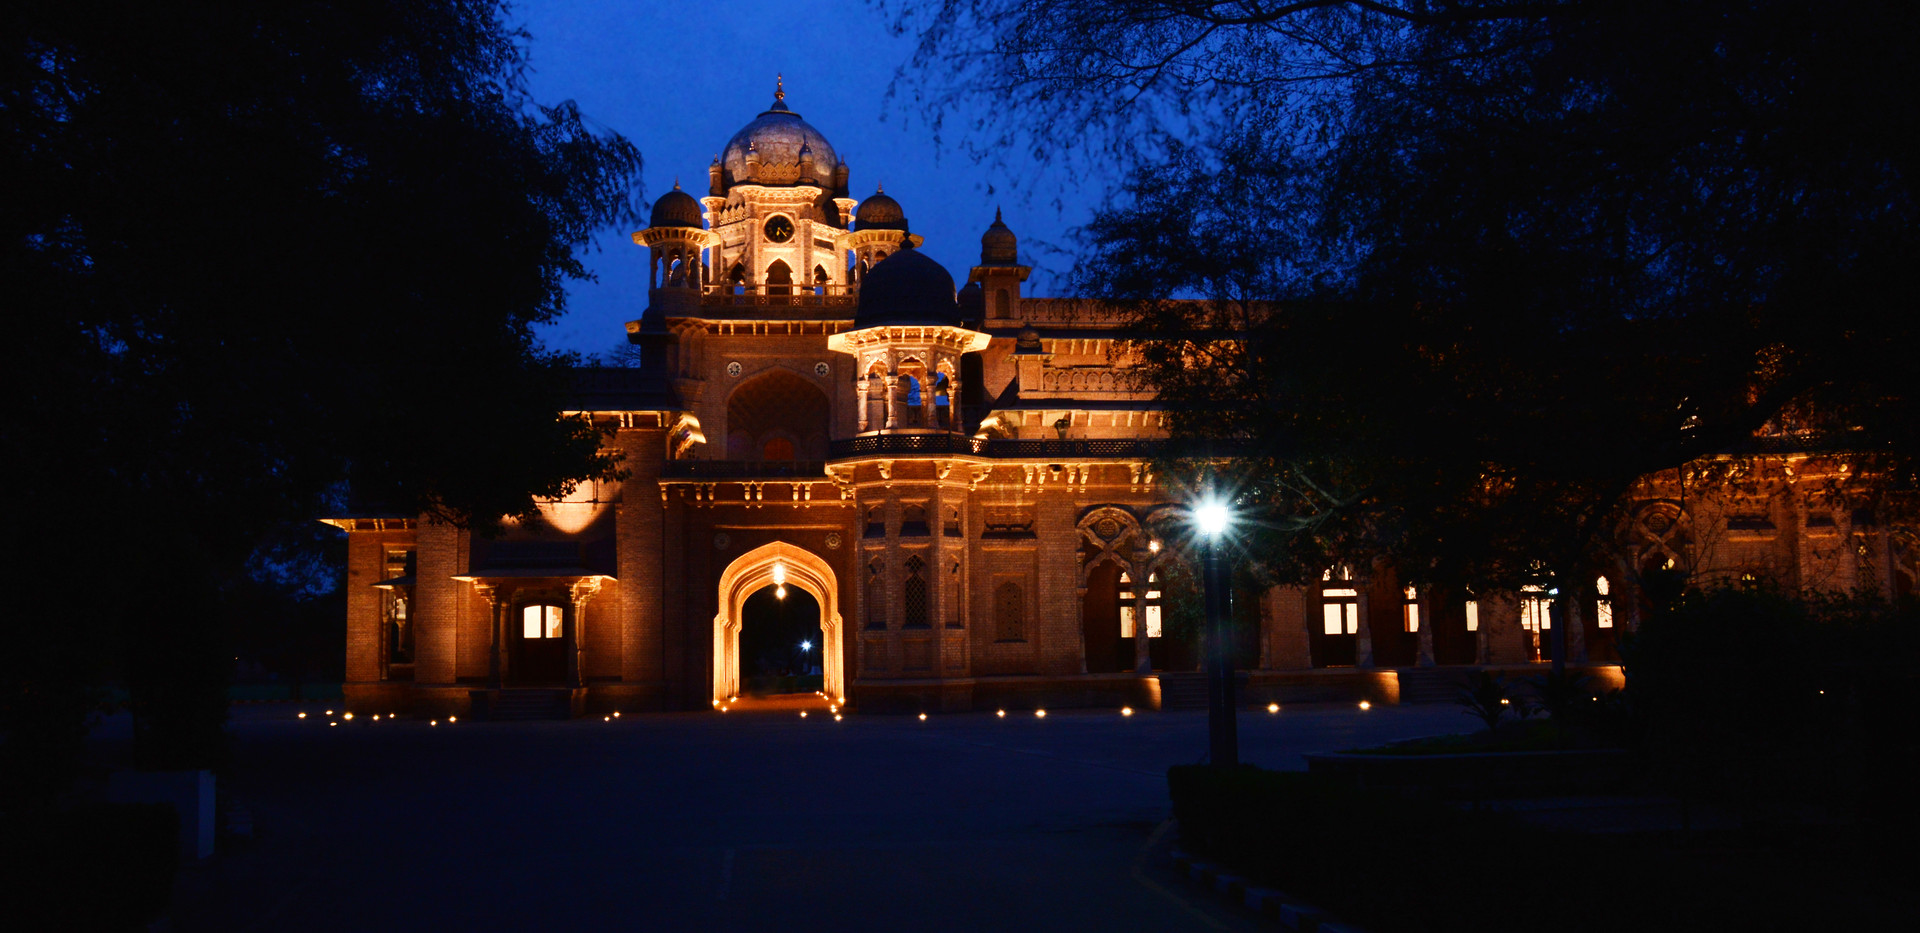 Aitchison College, Old Building at night.